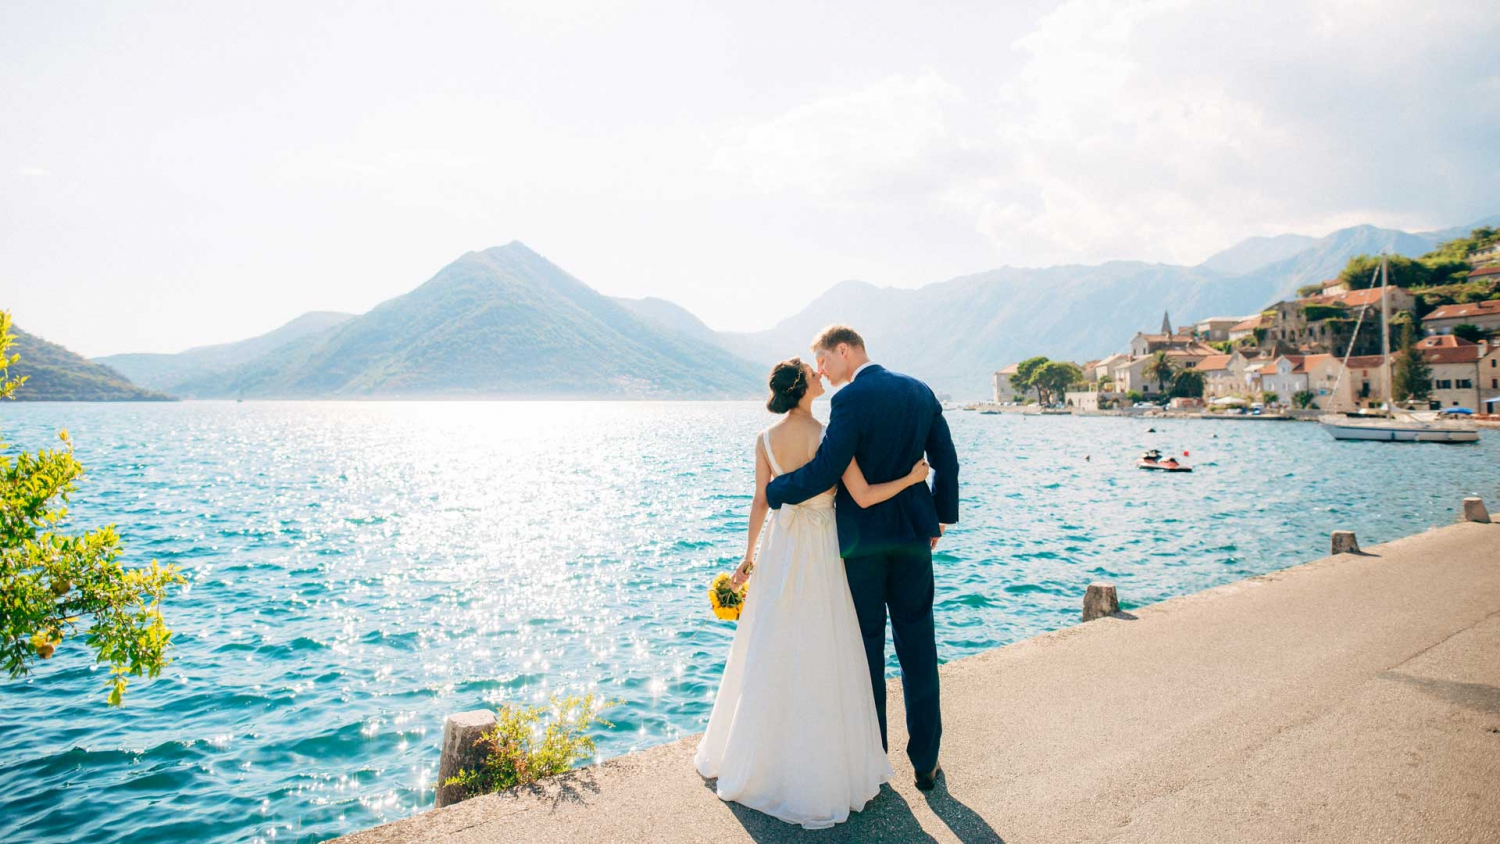 Fairytale Weddings in Montenegro